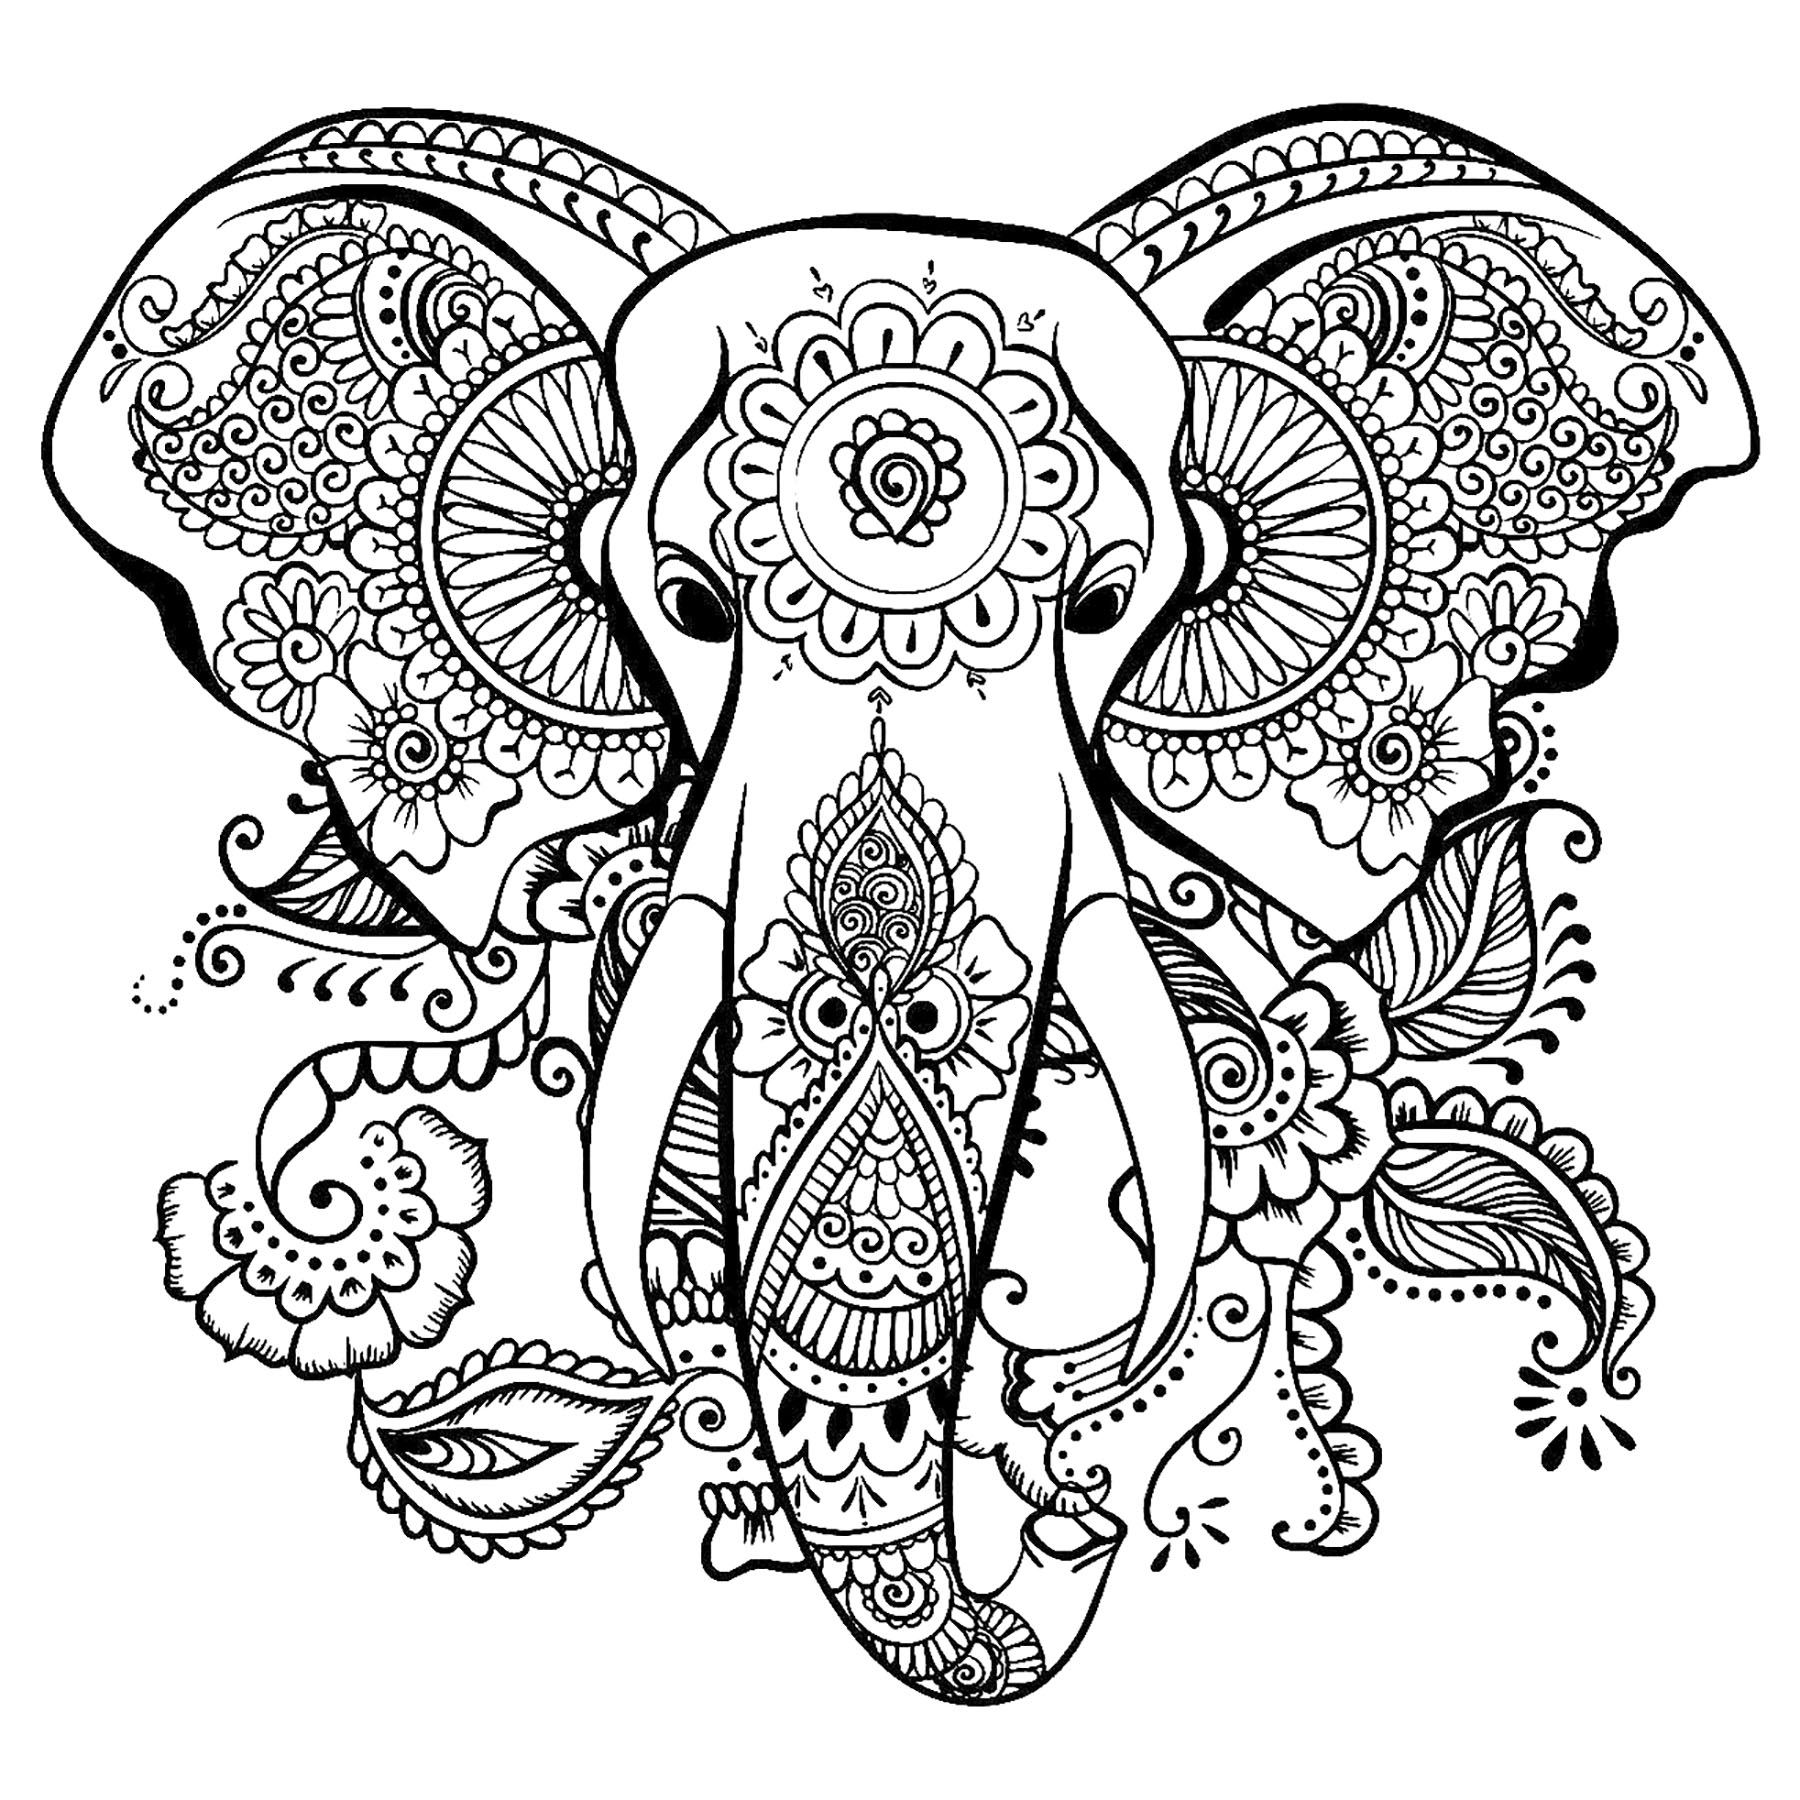 coloring book elephant images elephant 20 free coloring book printables popsugar images elephant book coloring